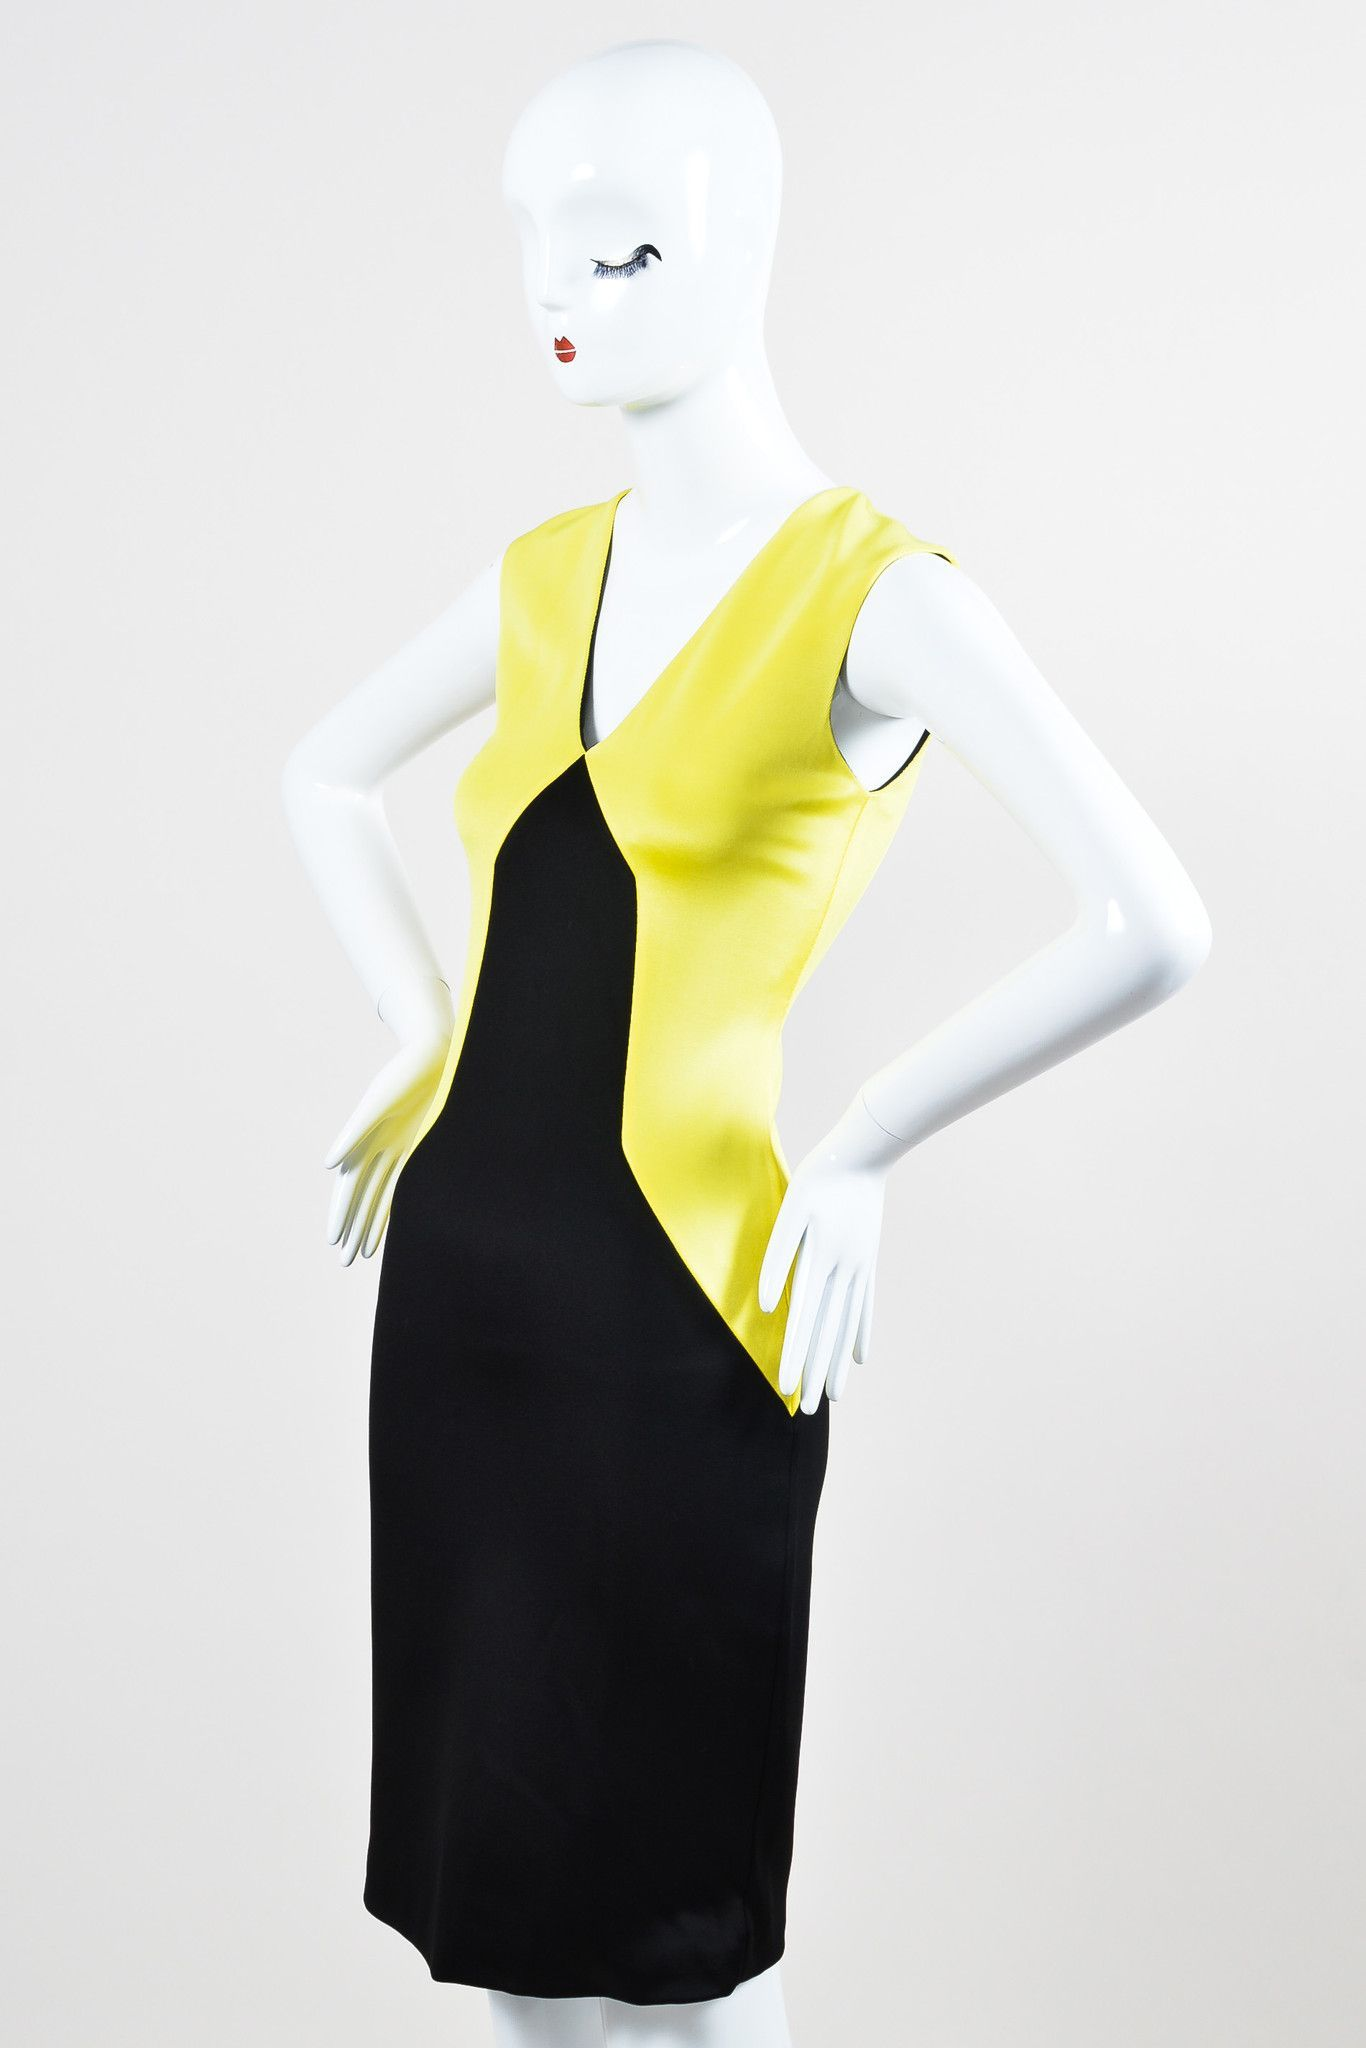 Colorblock sheath dress has black and electric yellow fabric panels. V-neck. Stretch fit. Zip closure down back. Lined. Retails for $950. Size: 4 (USA), 8 (UK), 38 (IT), 34 (FR) Made in: Italy Color: